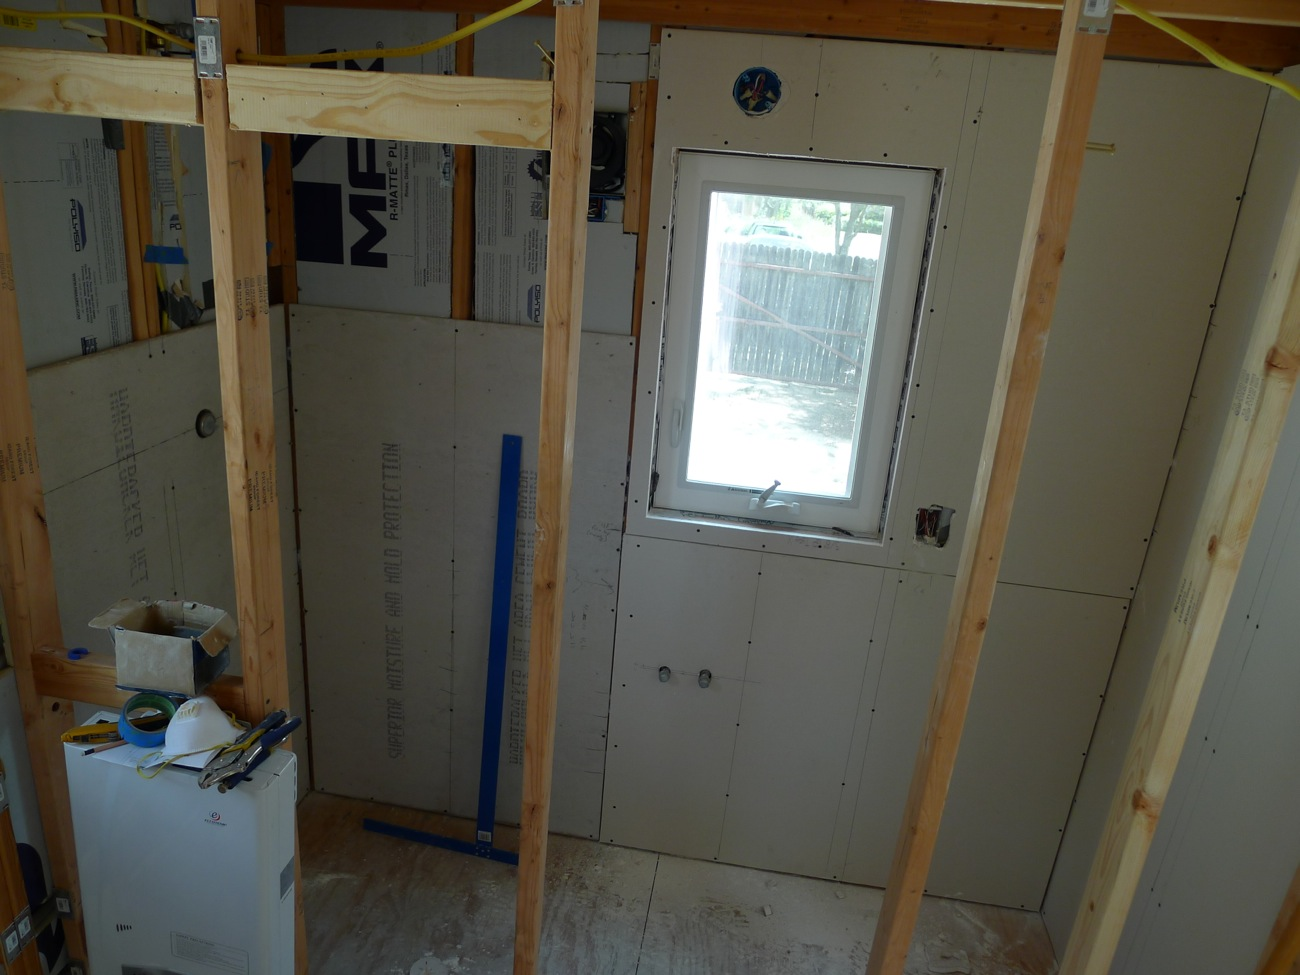 Tiny house finish drywall photos bathroom and shower 02 What sheetrock to use in bathroom